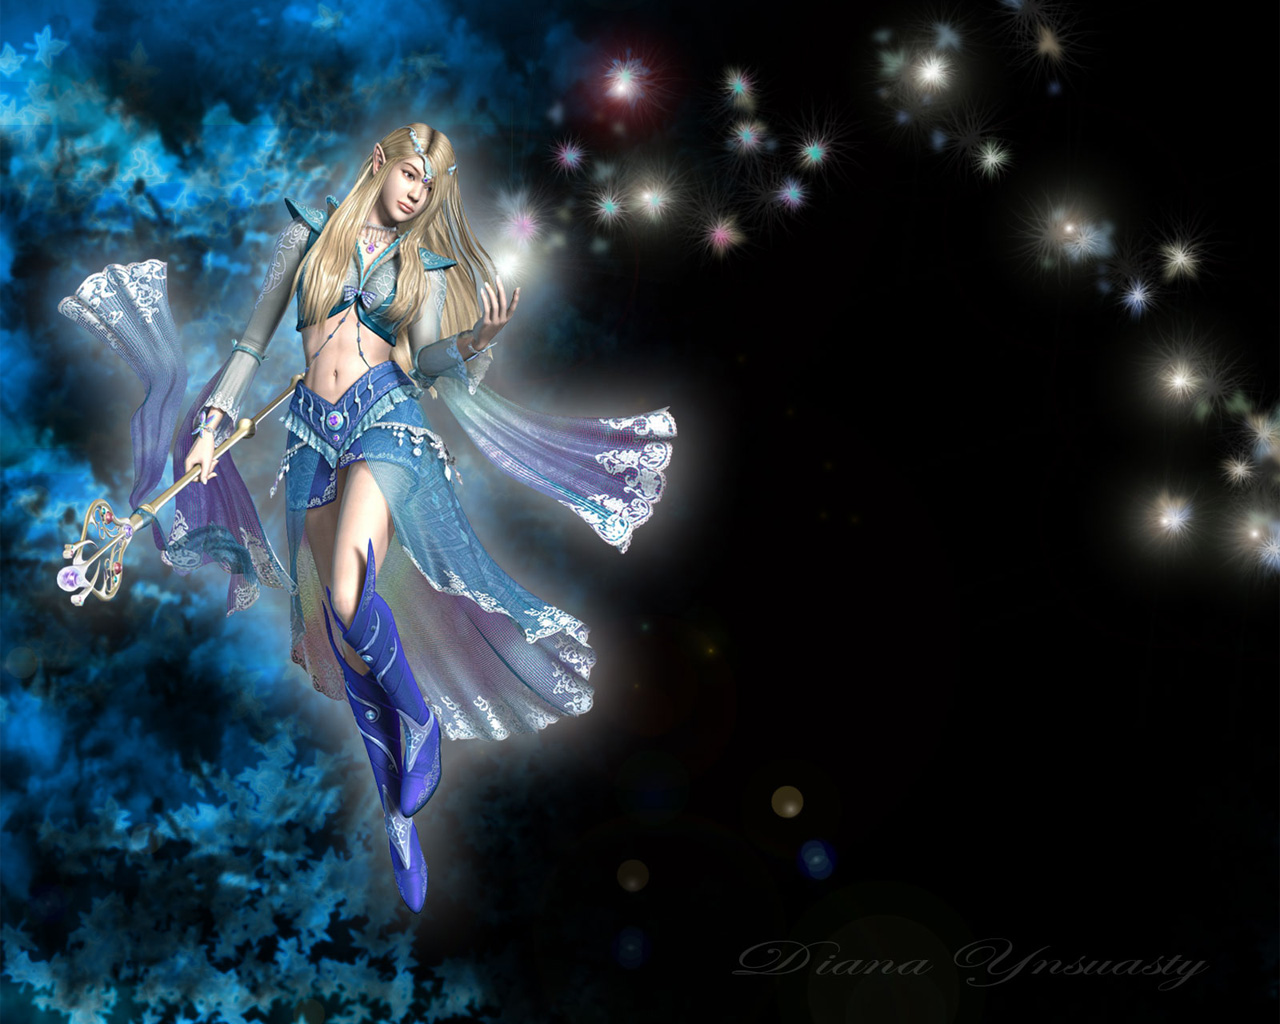 Free Live Fairy Wallpaper